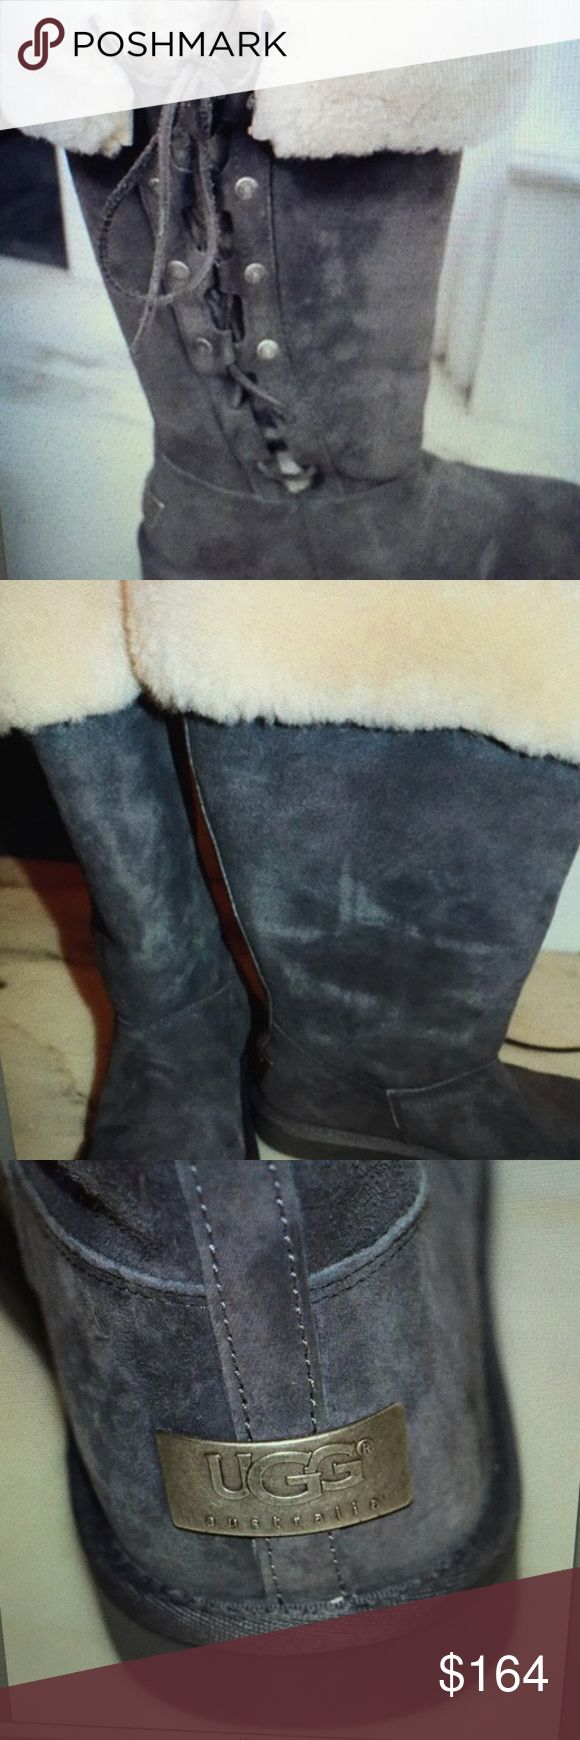 UGG Upside Classic Laceup Grey Suede Boots UGG Upside Classic Laceup Grey Suede Boots  EUR Size 36  Part of the Clasdic Line so they run a size large-scale up to a 6- 6.5  The boots lace up and the sheepskin folds over. .The boots are New in the box but the box was mailed to me with the tape directly on the box and is not in pristine condition. Still the name, size and code can be seen. UGG Shoes Winter & Rain Boots